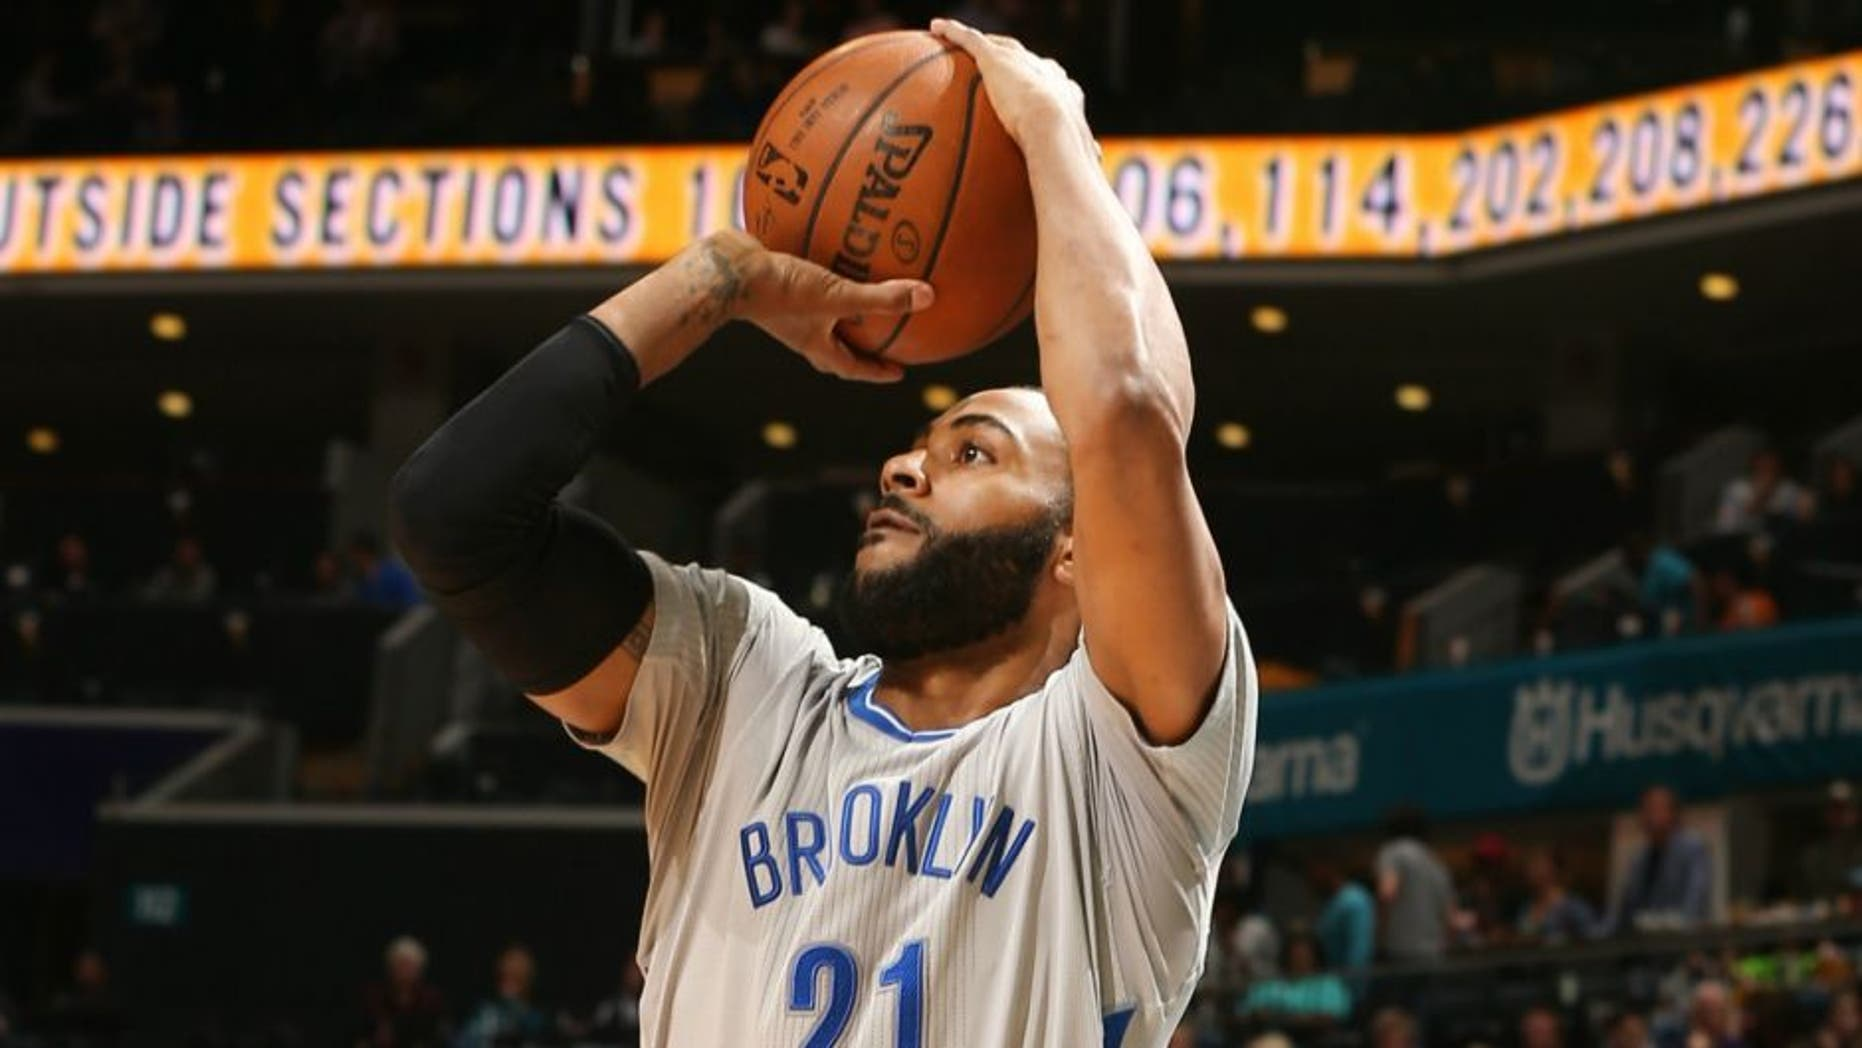 CHARLOTTE, NC - APRIL 8: Wayne Ellington #21 of the Brooklyn Nets shoots against the Charlotte Hornets during the game on April 8, 2016 at Time Warner Cable Arena in Charlotte, North Carolina. NOTE TO USER: User expressly acknowledges and agrees that, by downloading and or using this Photograph, user is consenting to the terms and conditions of the Getty Images License Agreement. Mandatory Copyright Notice: Copyright 2016 NBAE (Photo by Kent Smith/NBAE via Getty Images)